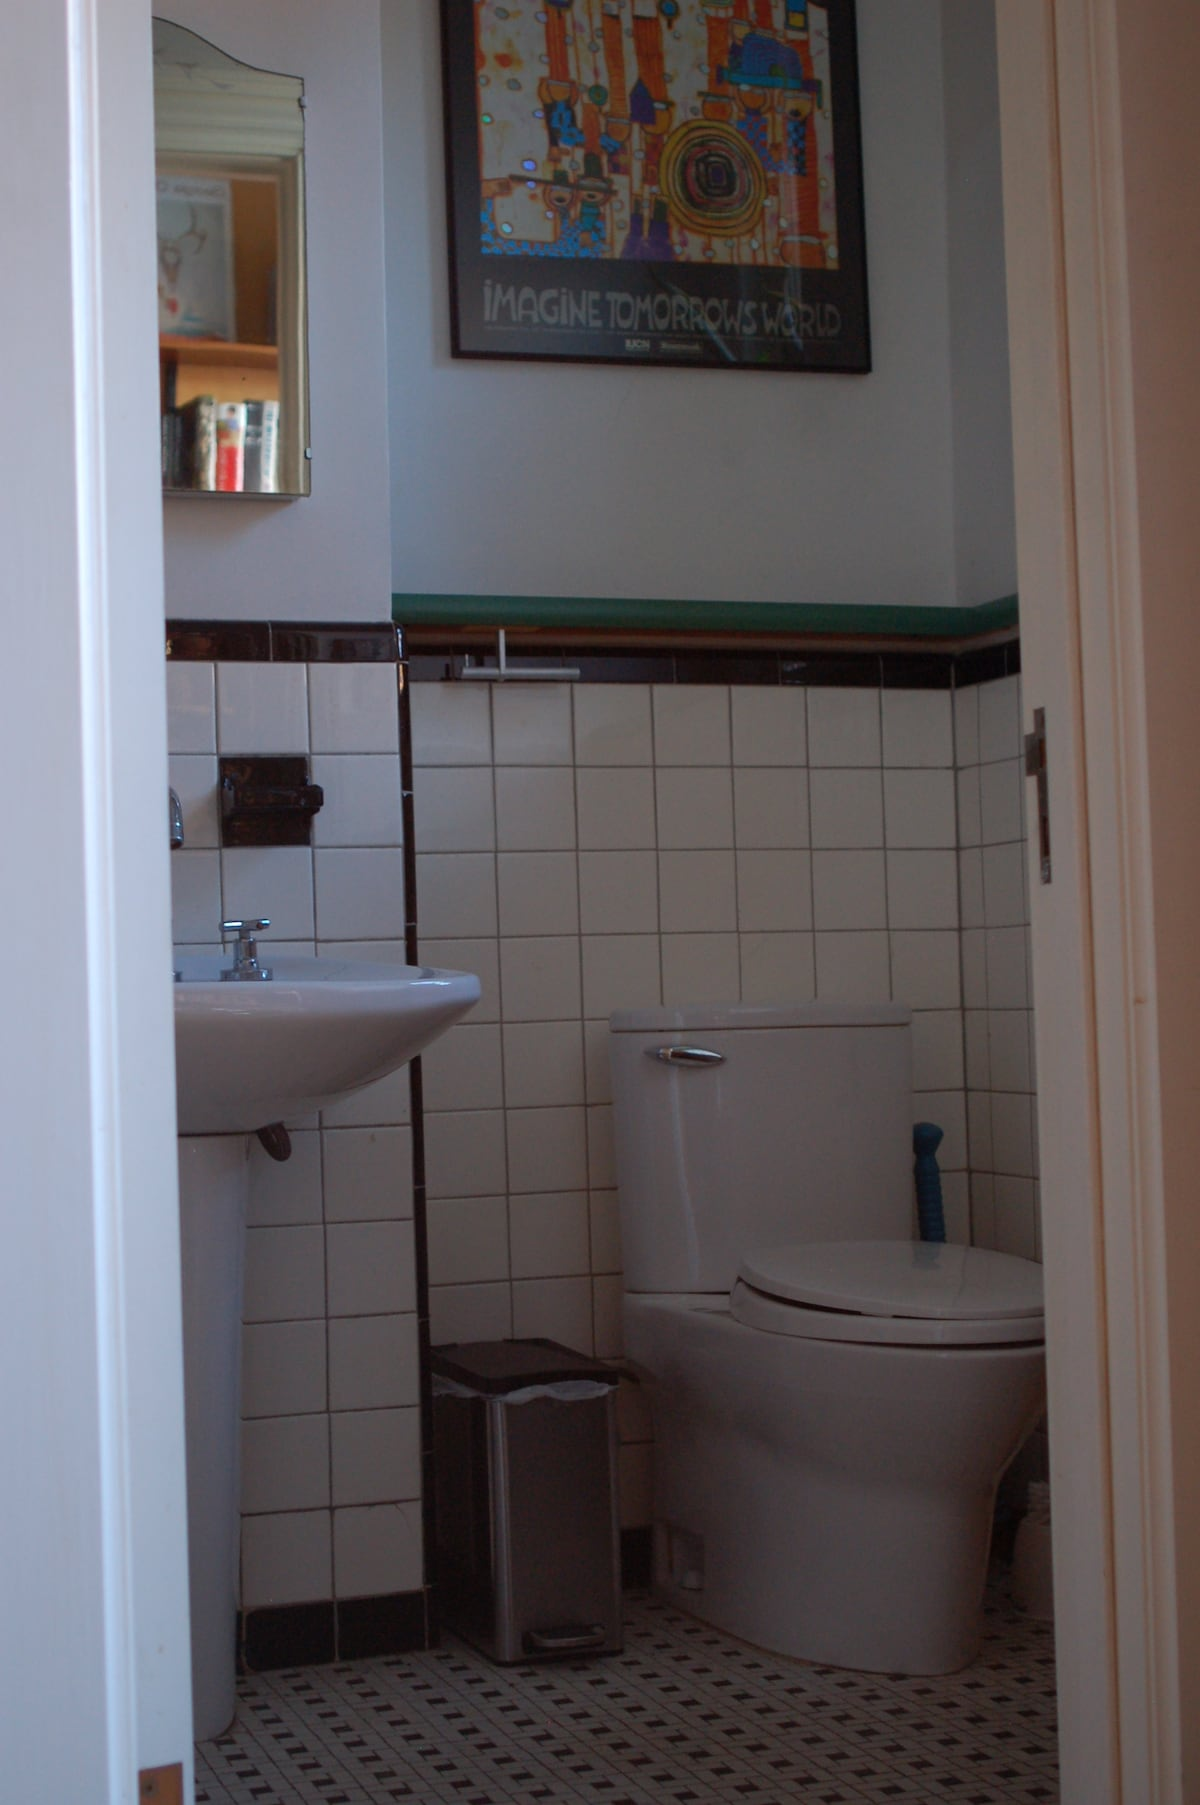 """Sink and toilet with Hundertwasser poster """"Imagine Tomorrow's World""""."""